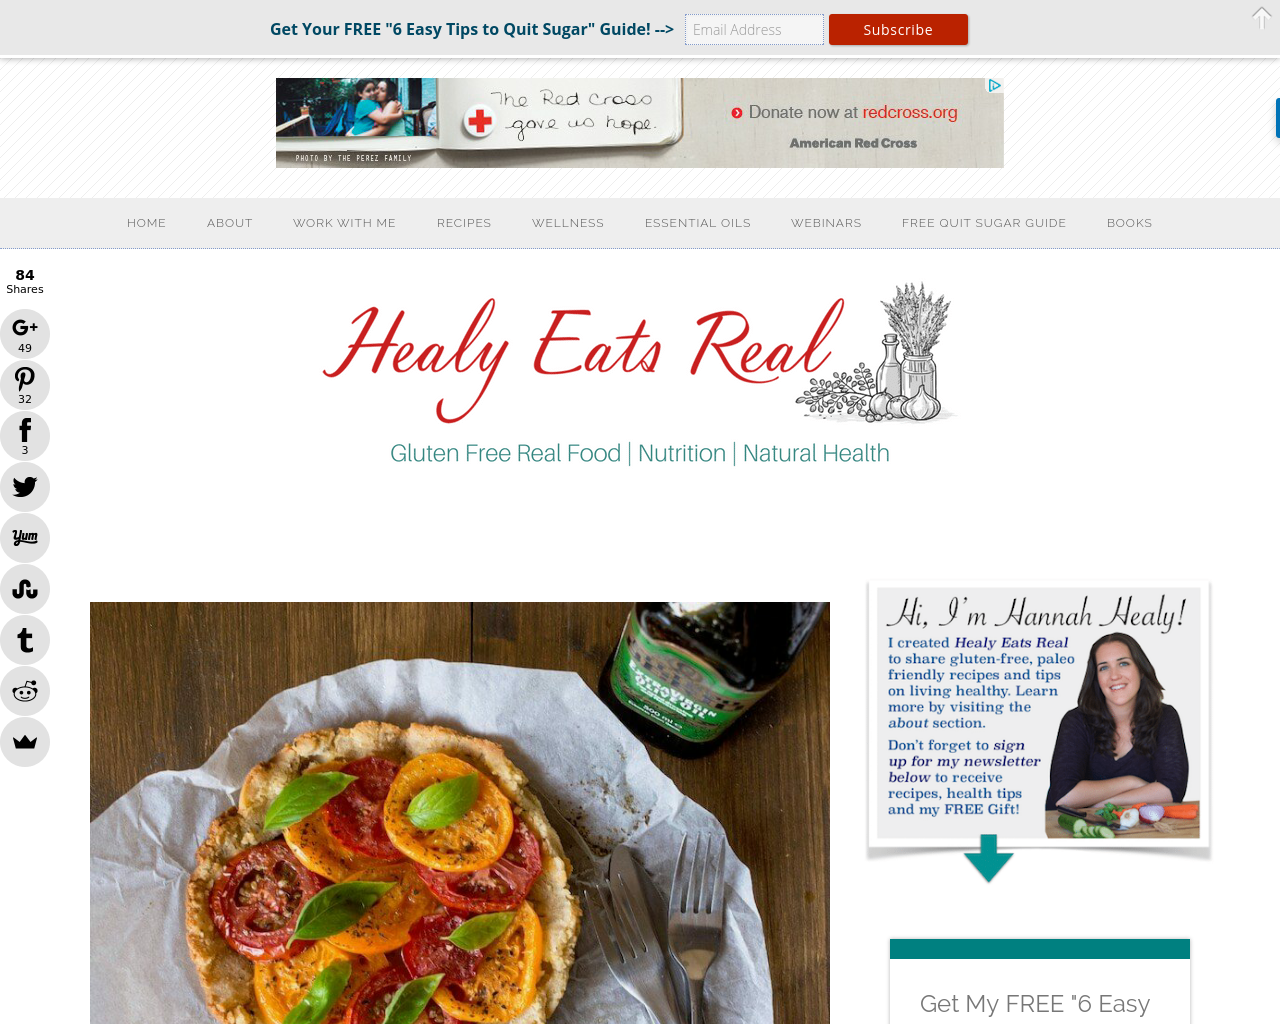 Healy-Eats-Real-Advertising-Reviews-Pricing